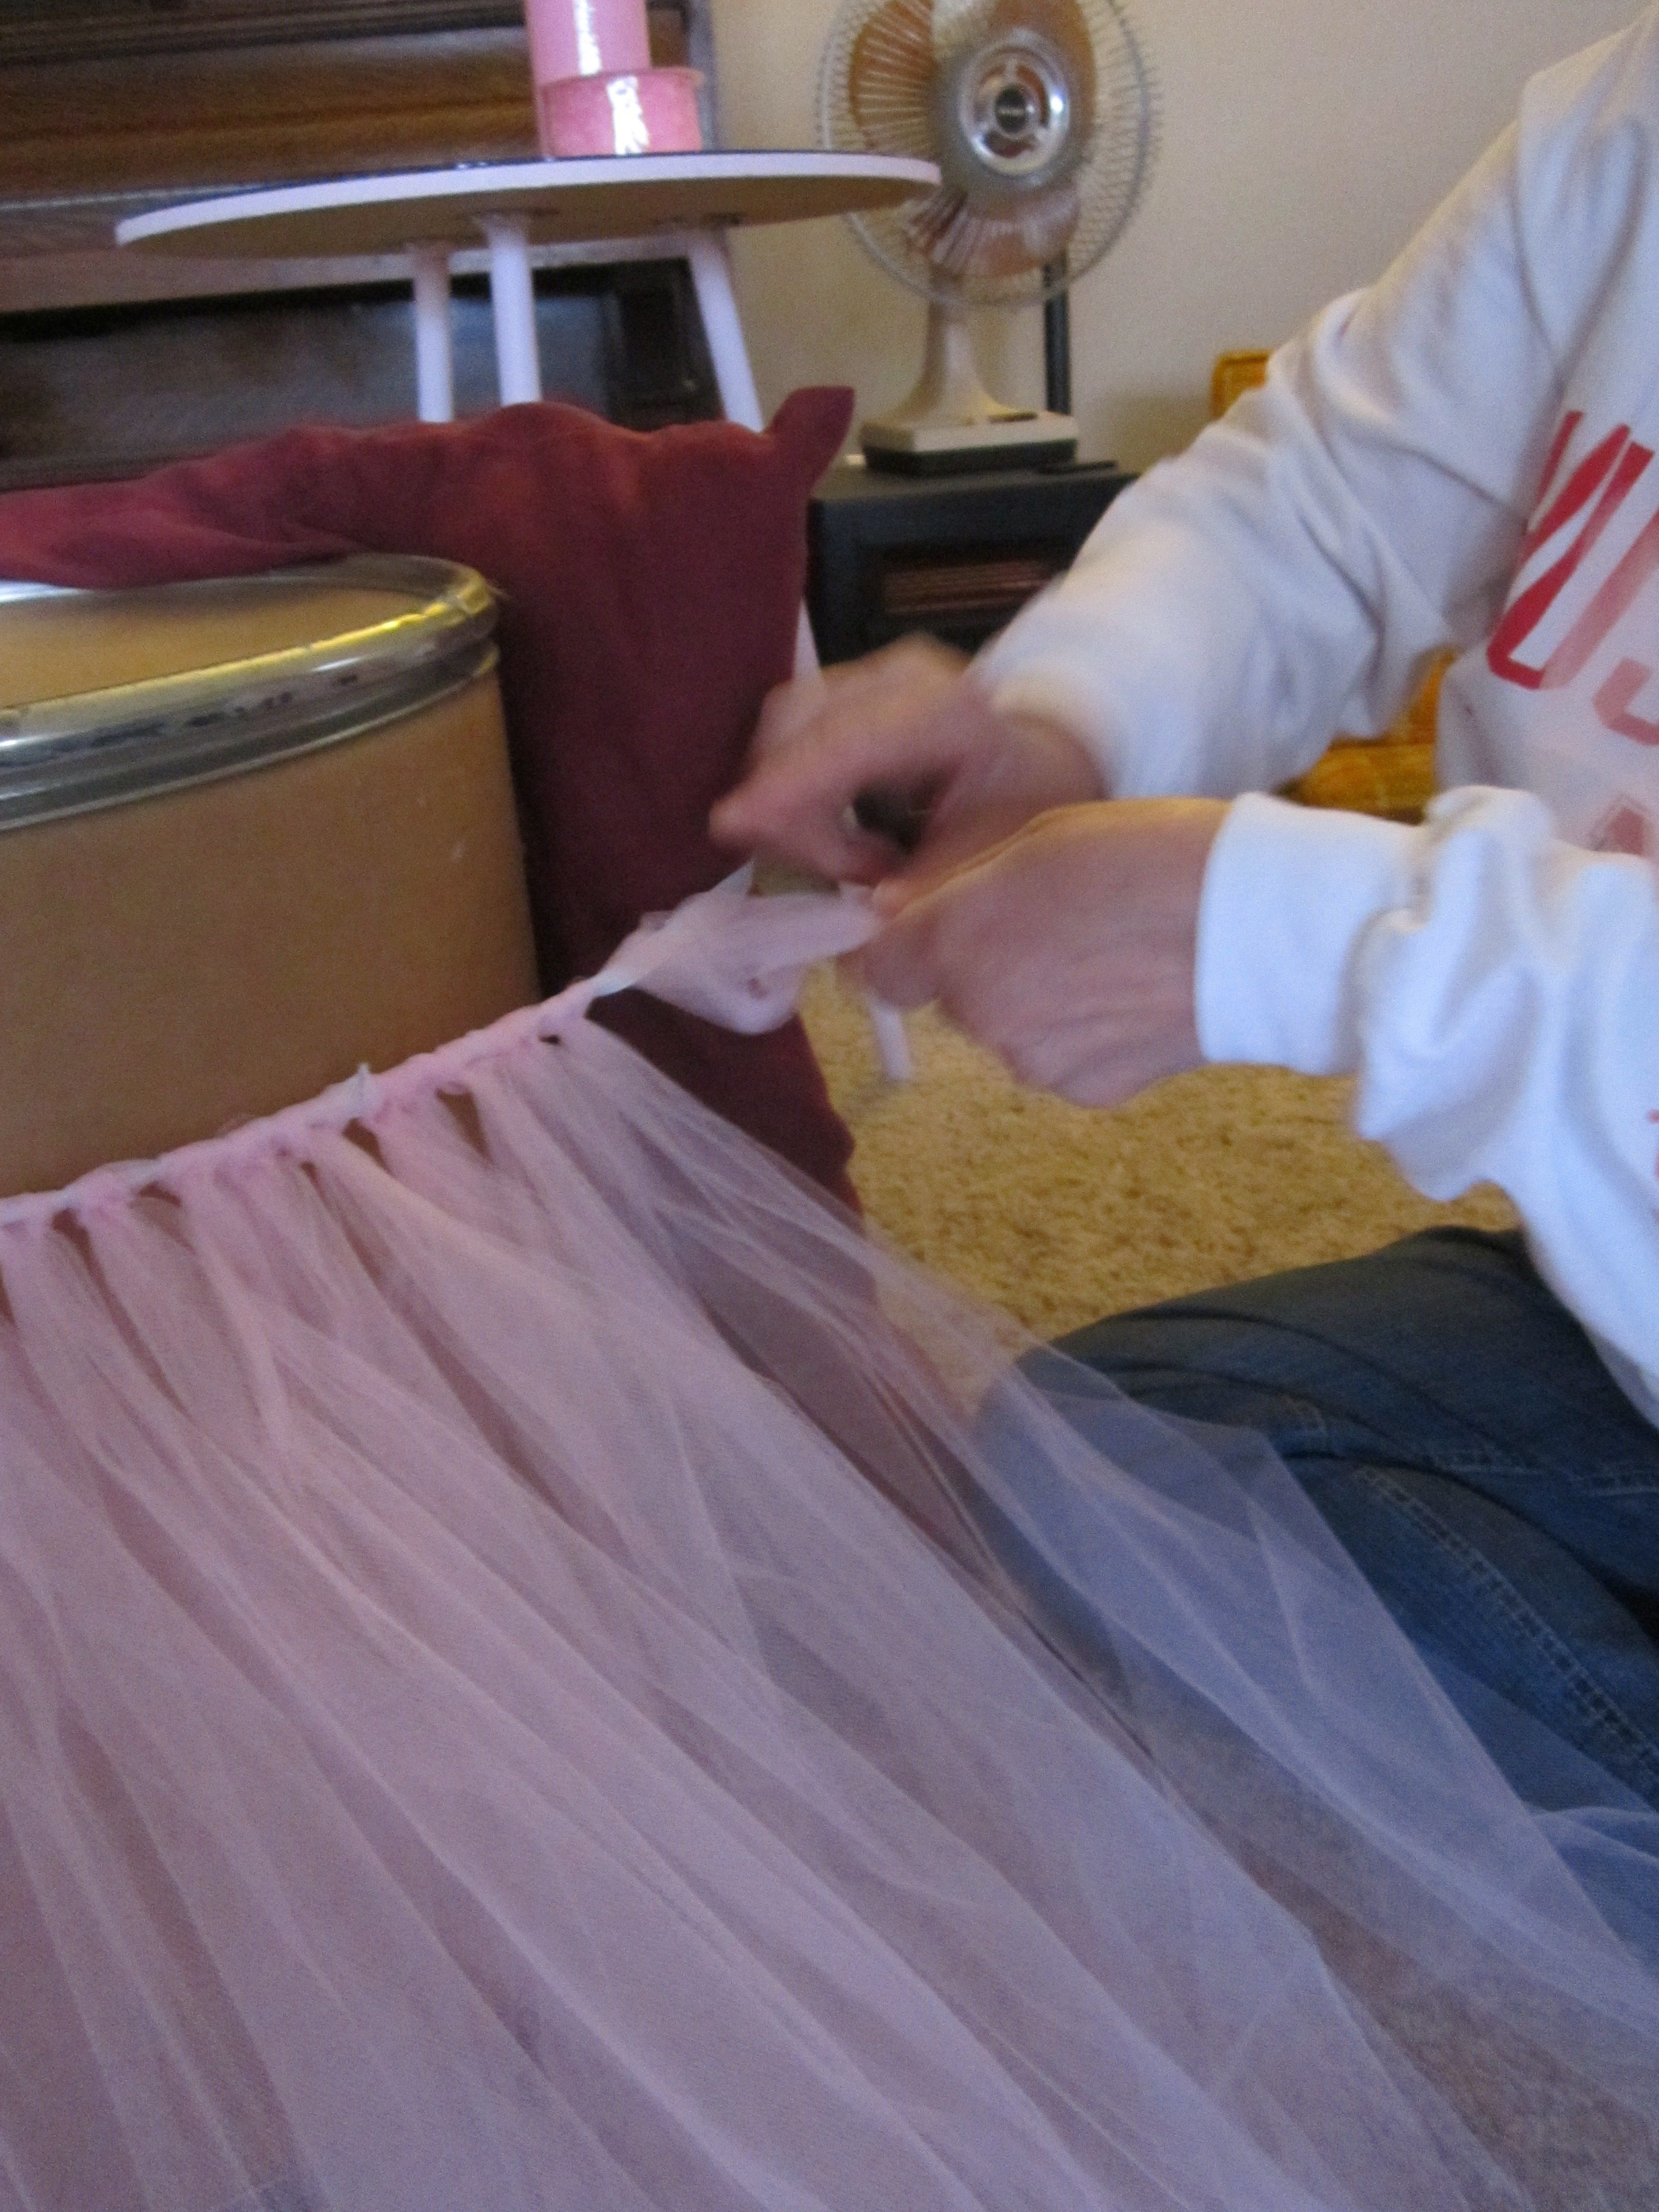 Make your own table skirt with tulle | DIY | Pinterest